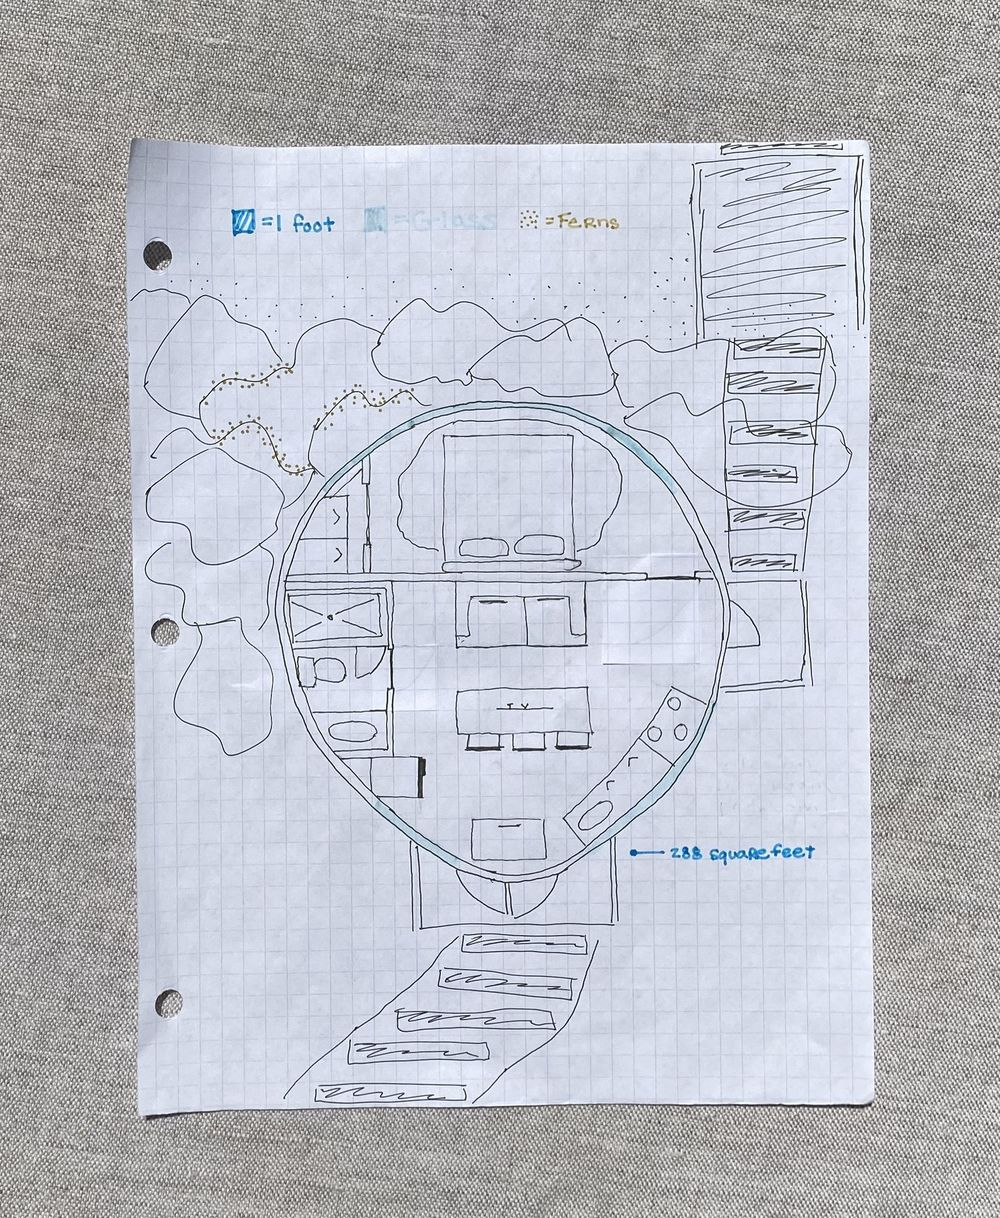 Sunset Rock Tiny house - image 2 - student project